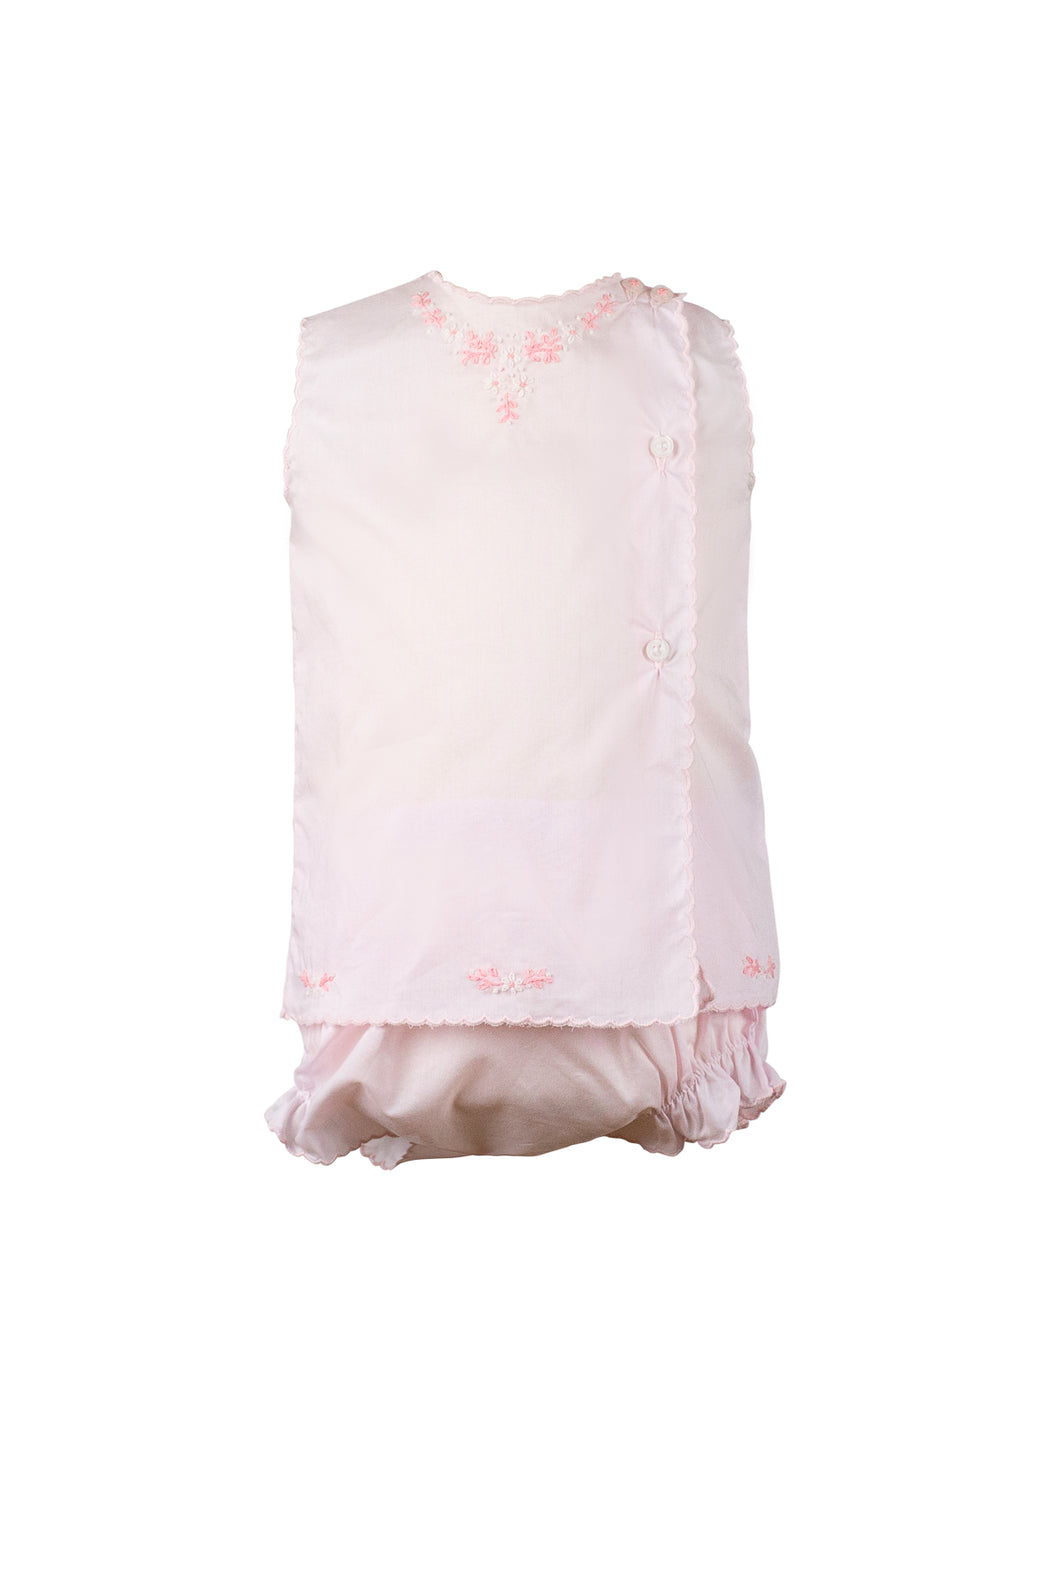 Susannah Pink and White Diaper Set